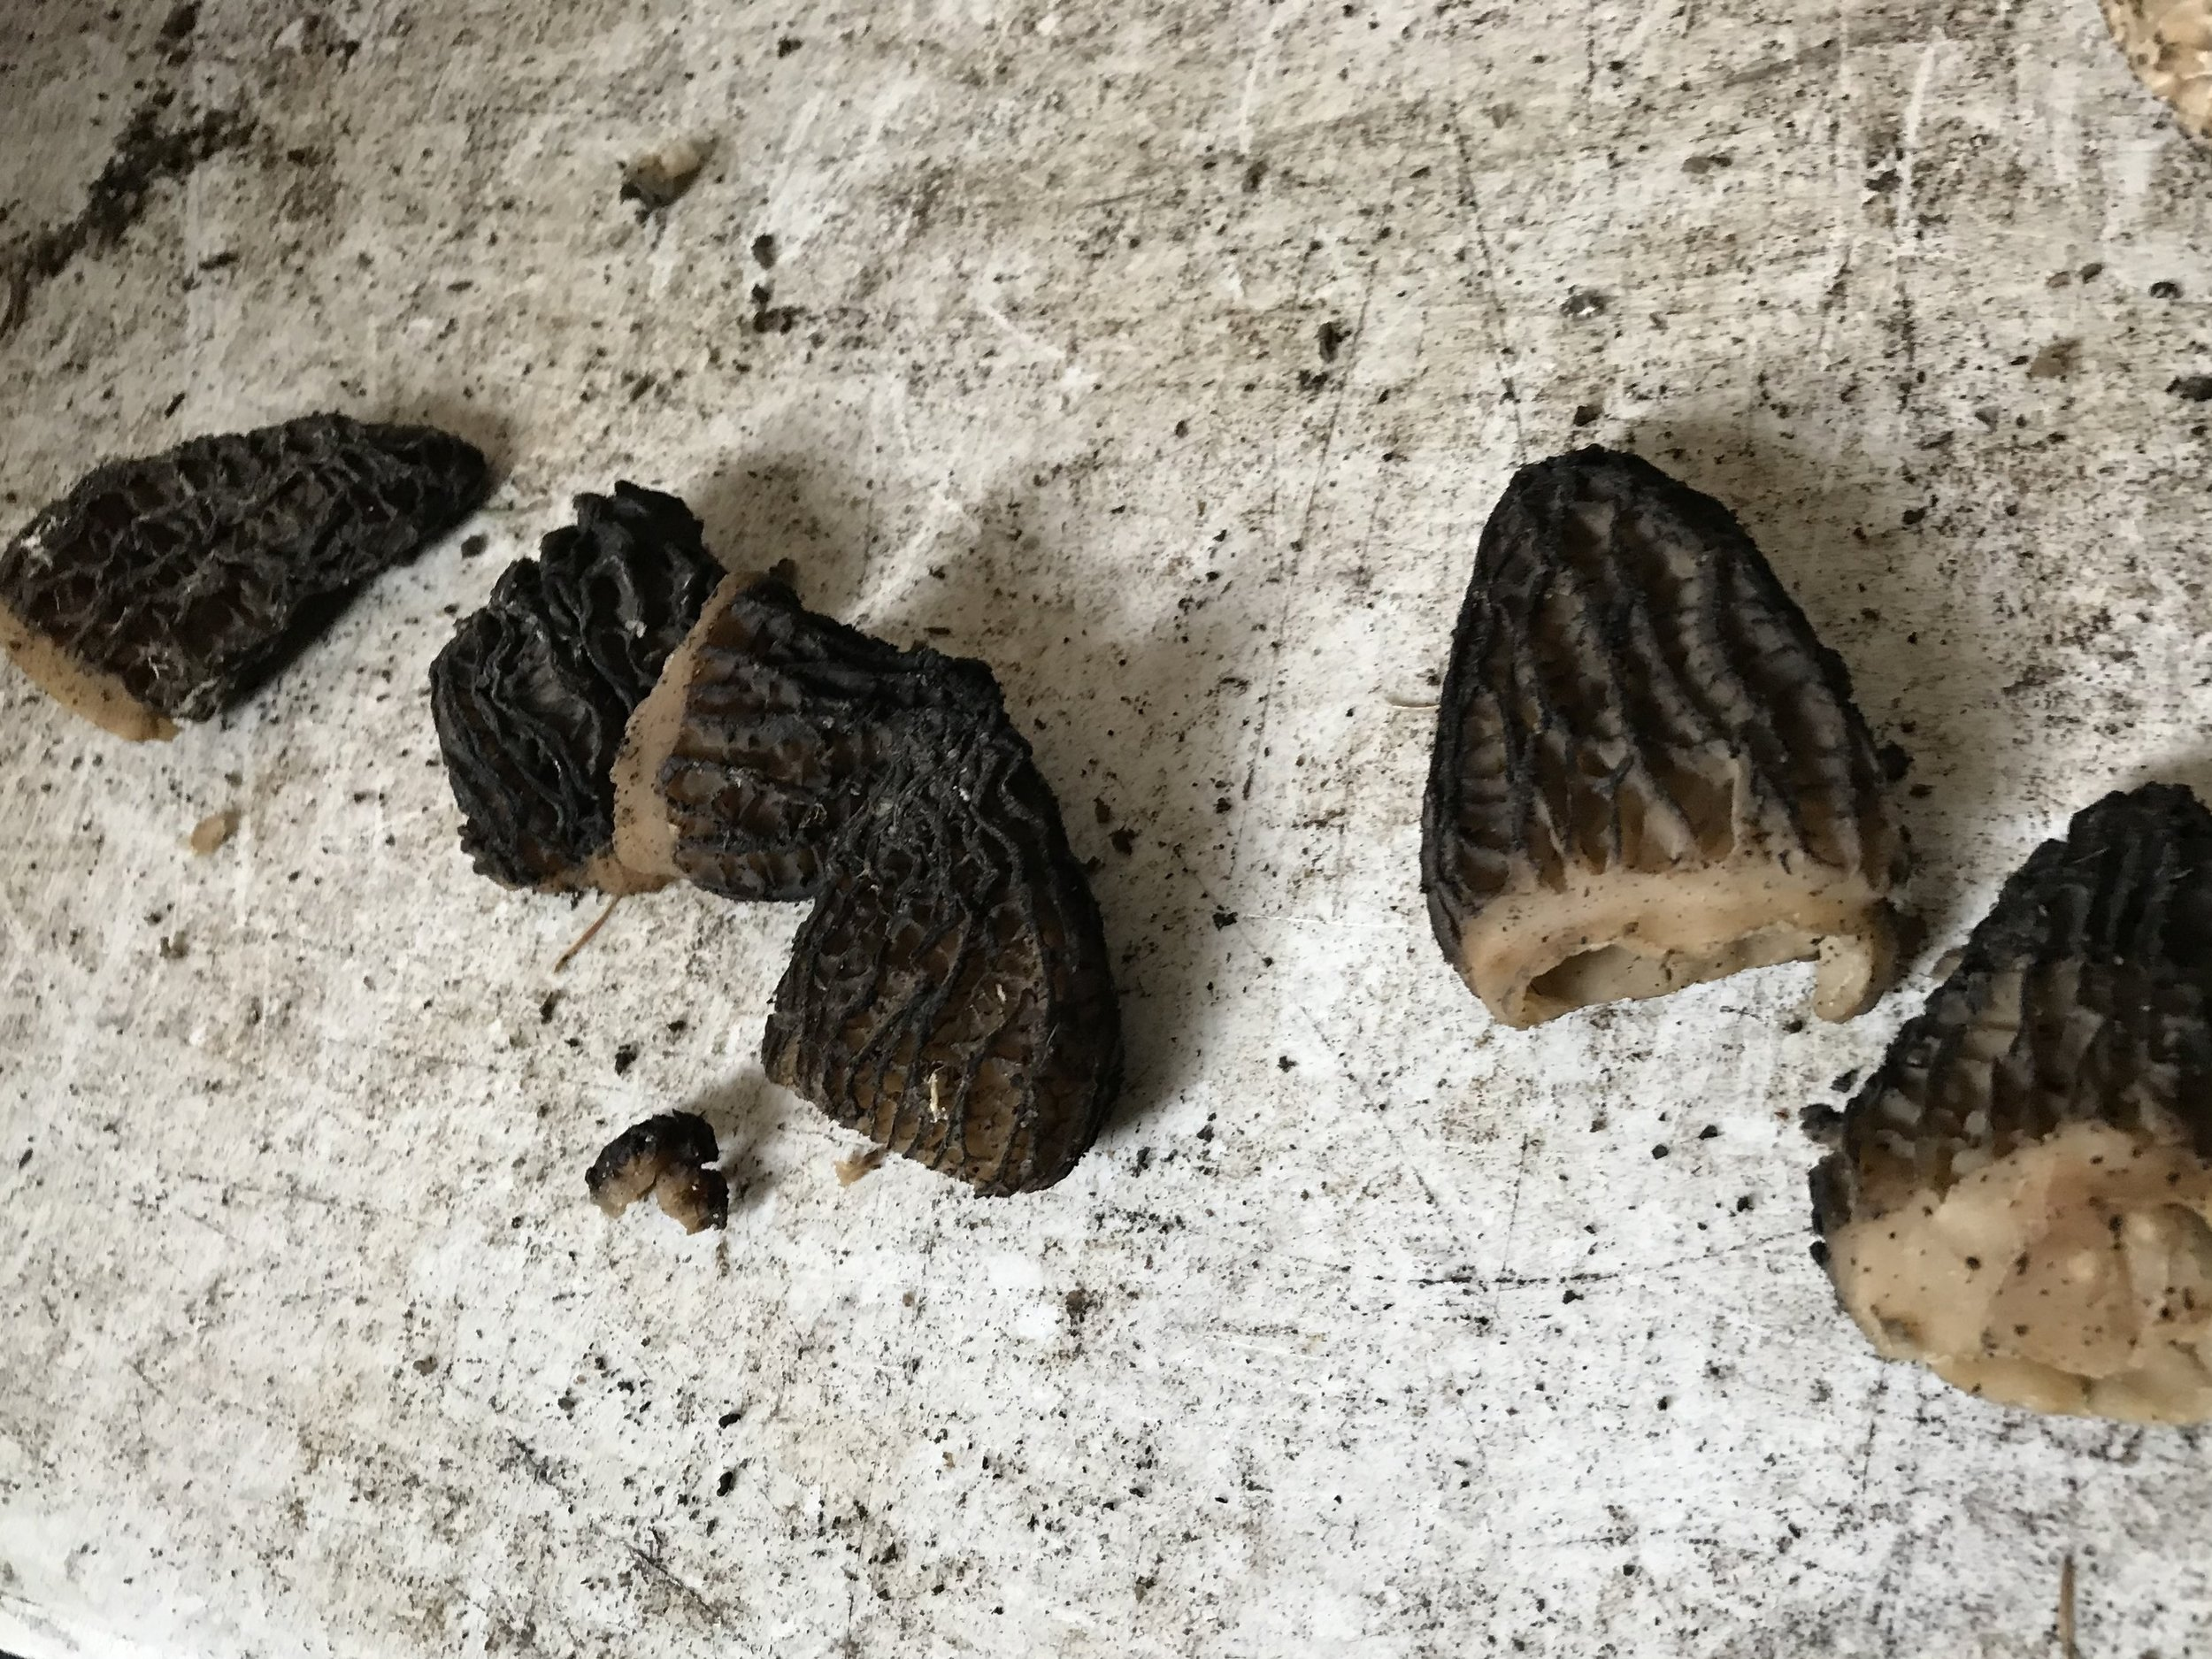 Rotten or old morels. Take note of the root colour and shrivelled bodies.